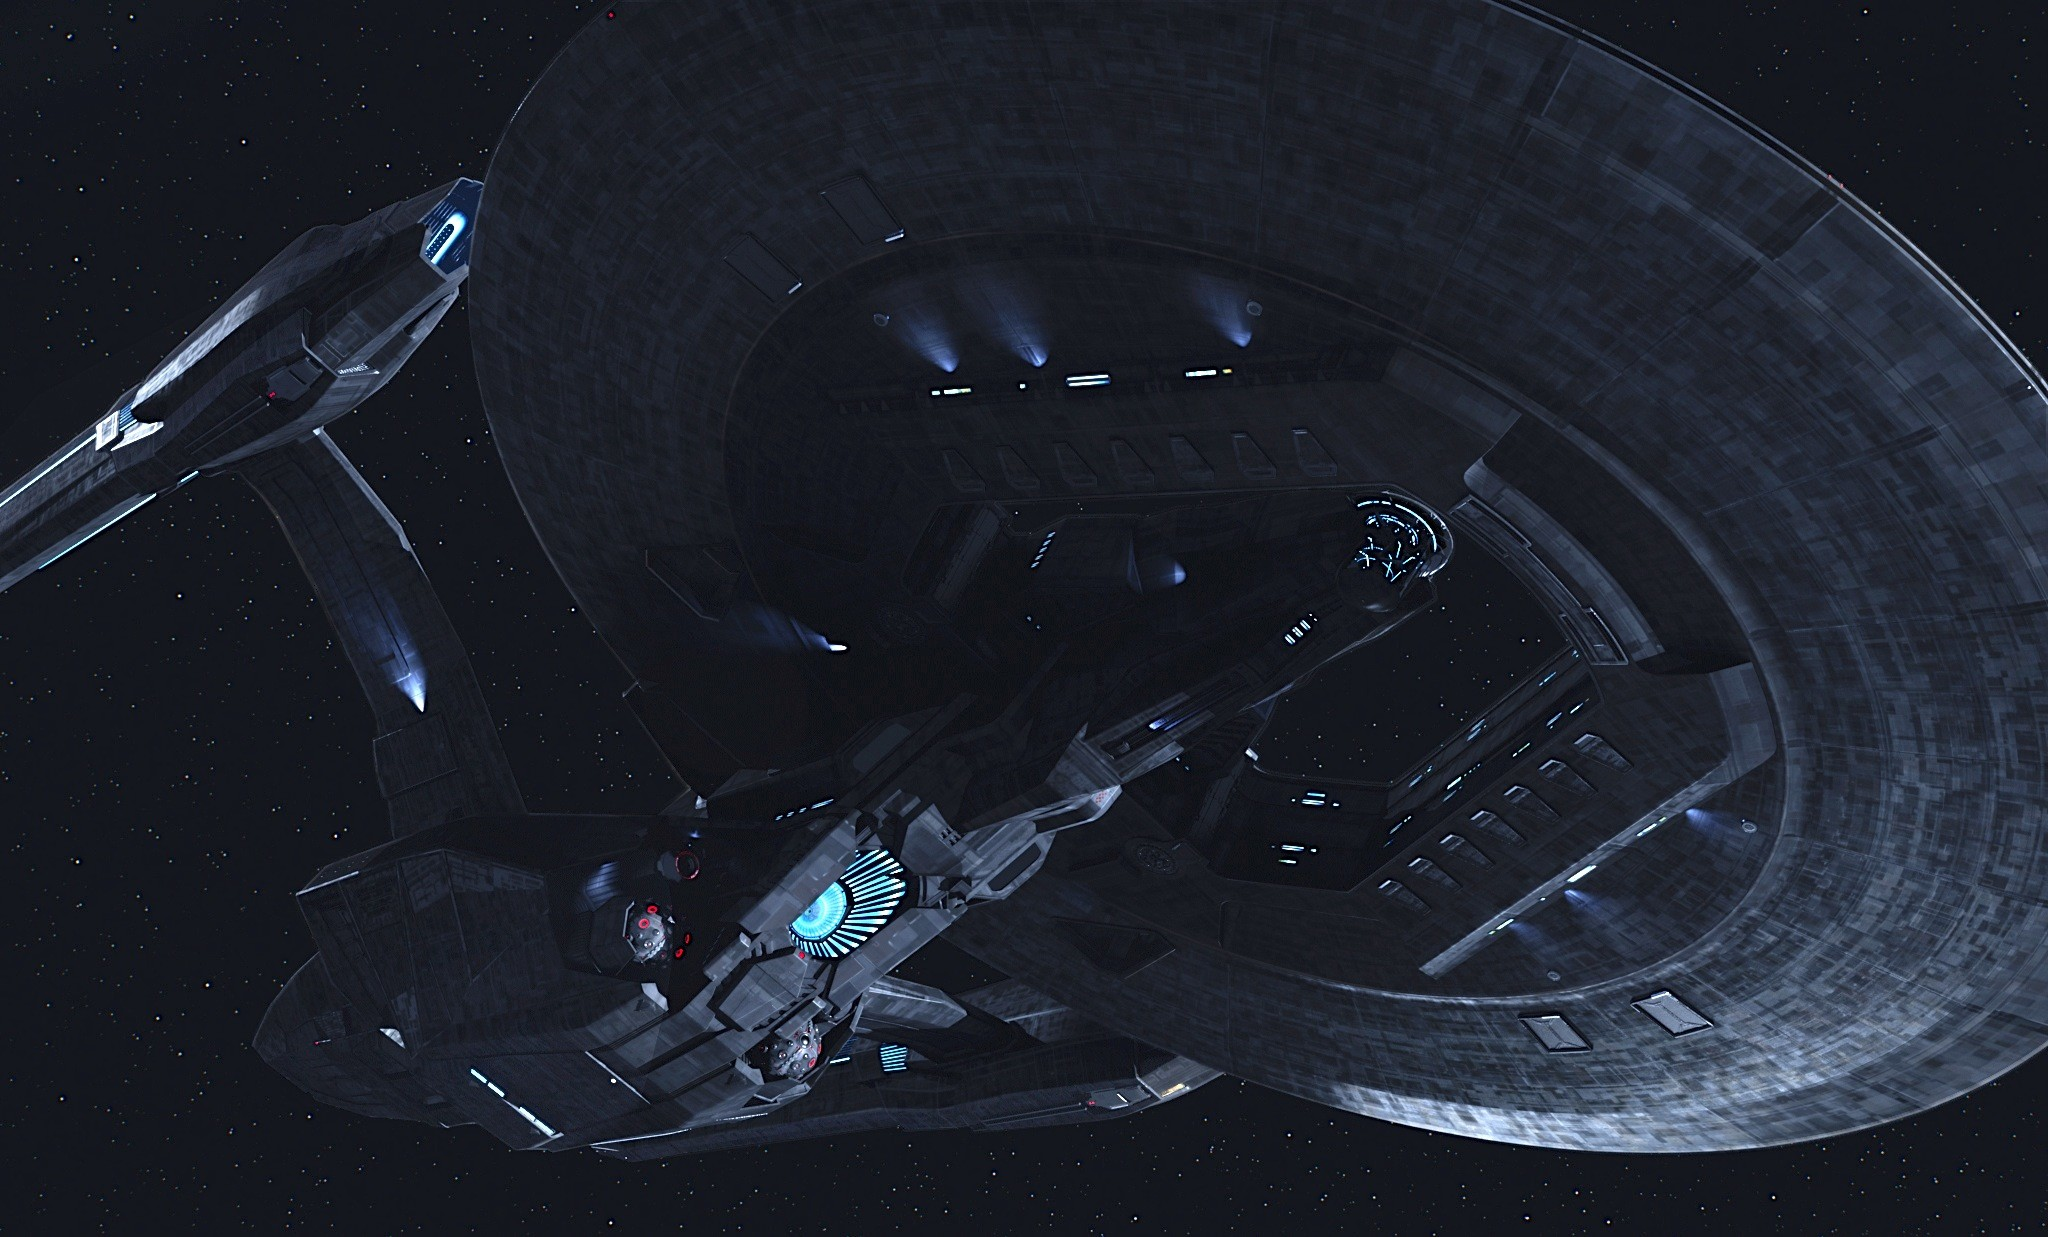 2048x1237 Star Trek Starship Enterprise Spaceship Dark Enterprise .